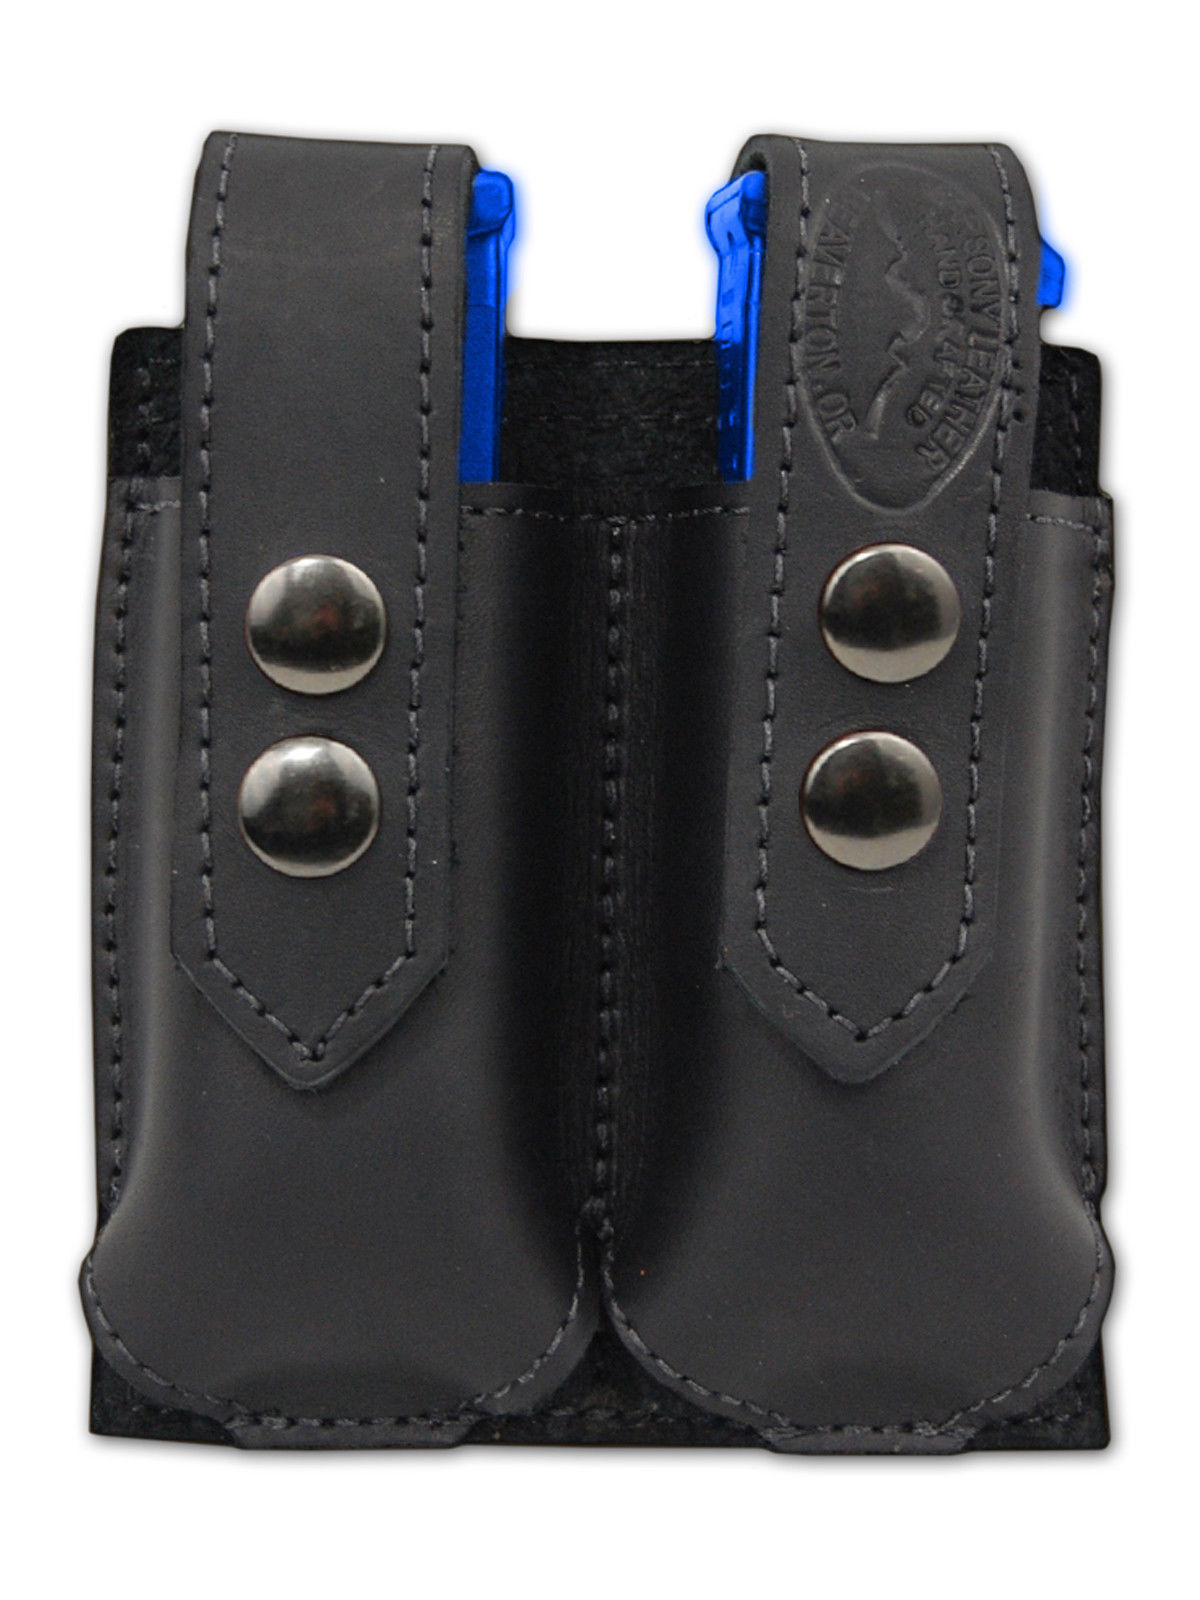 NEW Barsony Black Leather Pancake Holster+Dbl Mag Pouch Paraordnance Comp 9mm 40